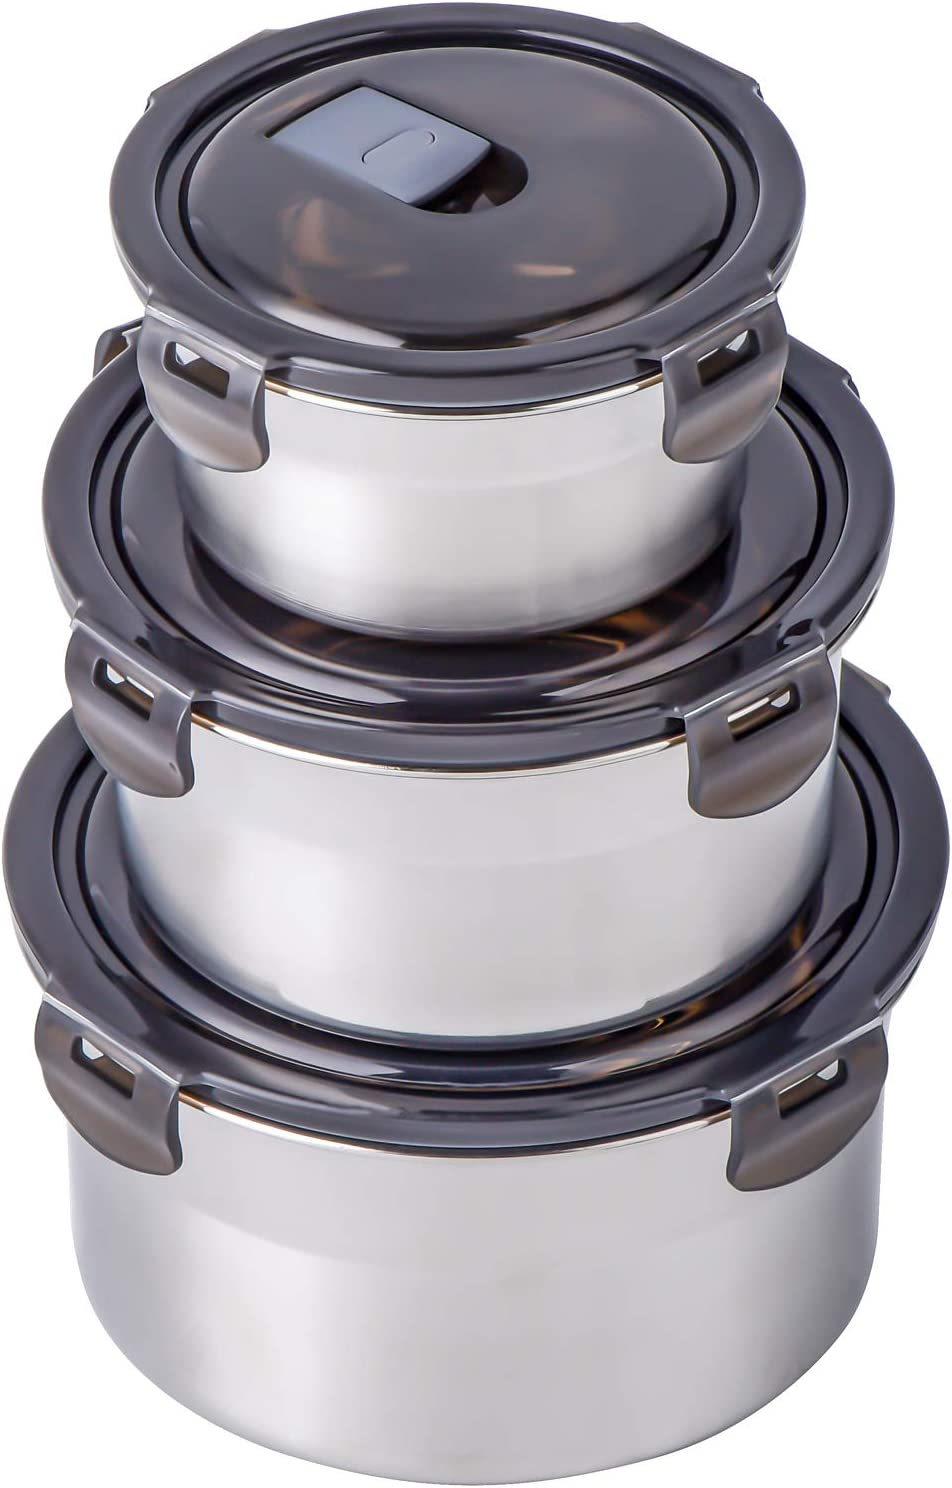 NEWANOVI 18/8 Stainless Steel Lunch Box Food Storage Containers with Lids, Stackable Leak-Proof Metal Container Round Bento Box for Sandwich, Salad, Fruit, Picnic, Camping, Set of 3 Small-Middle-Large